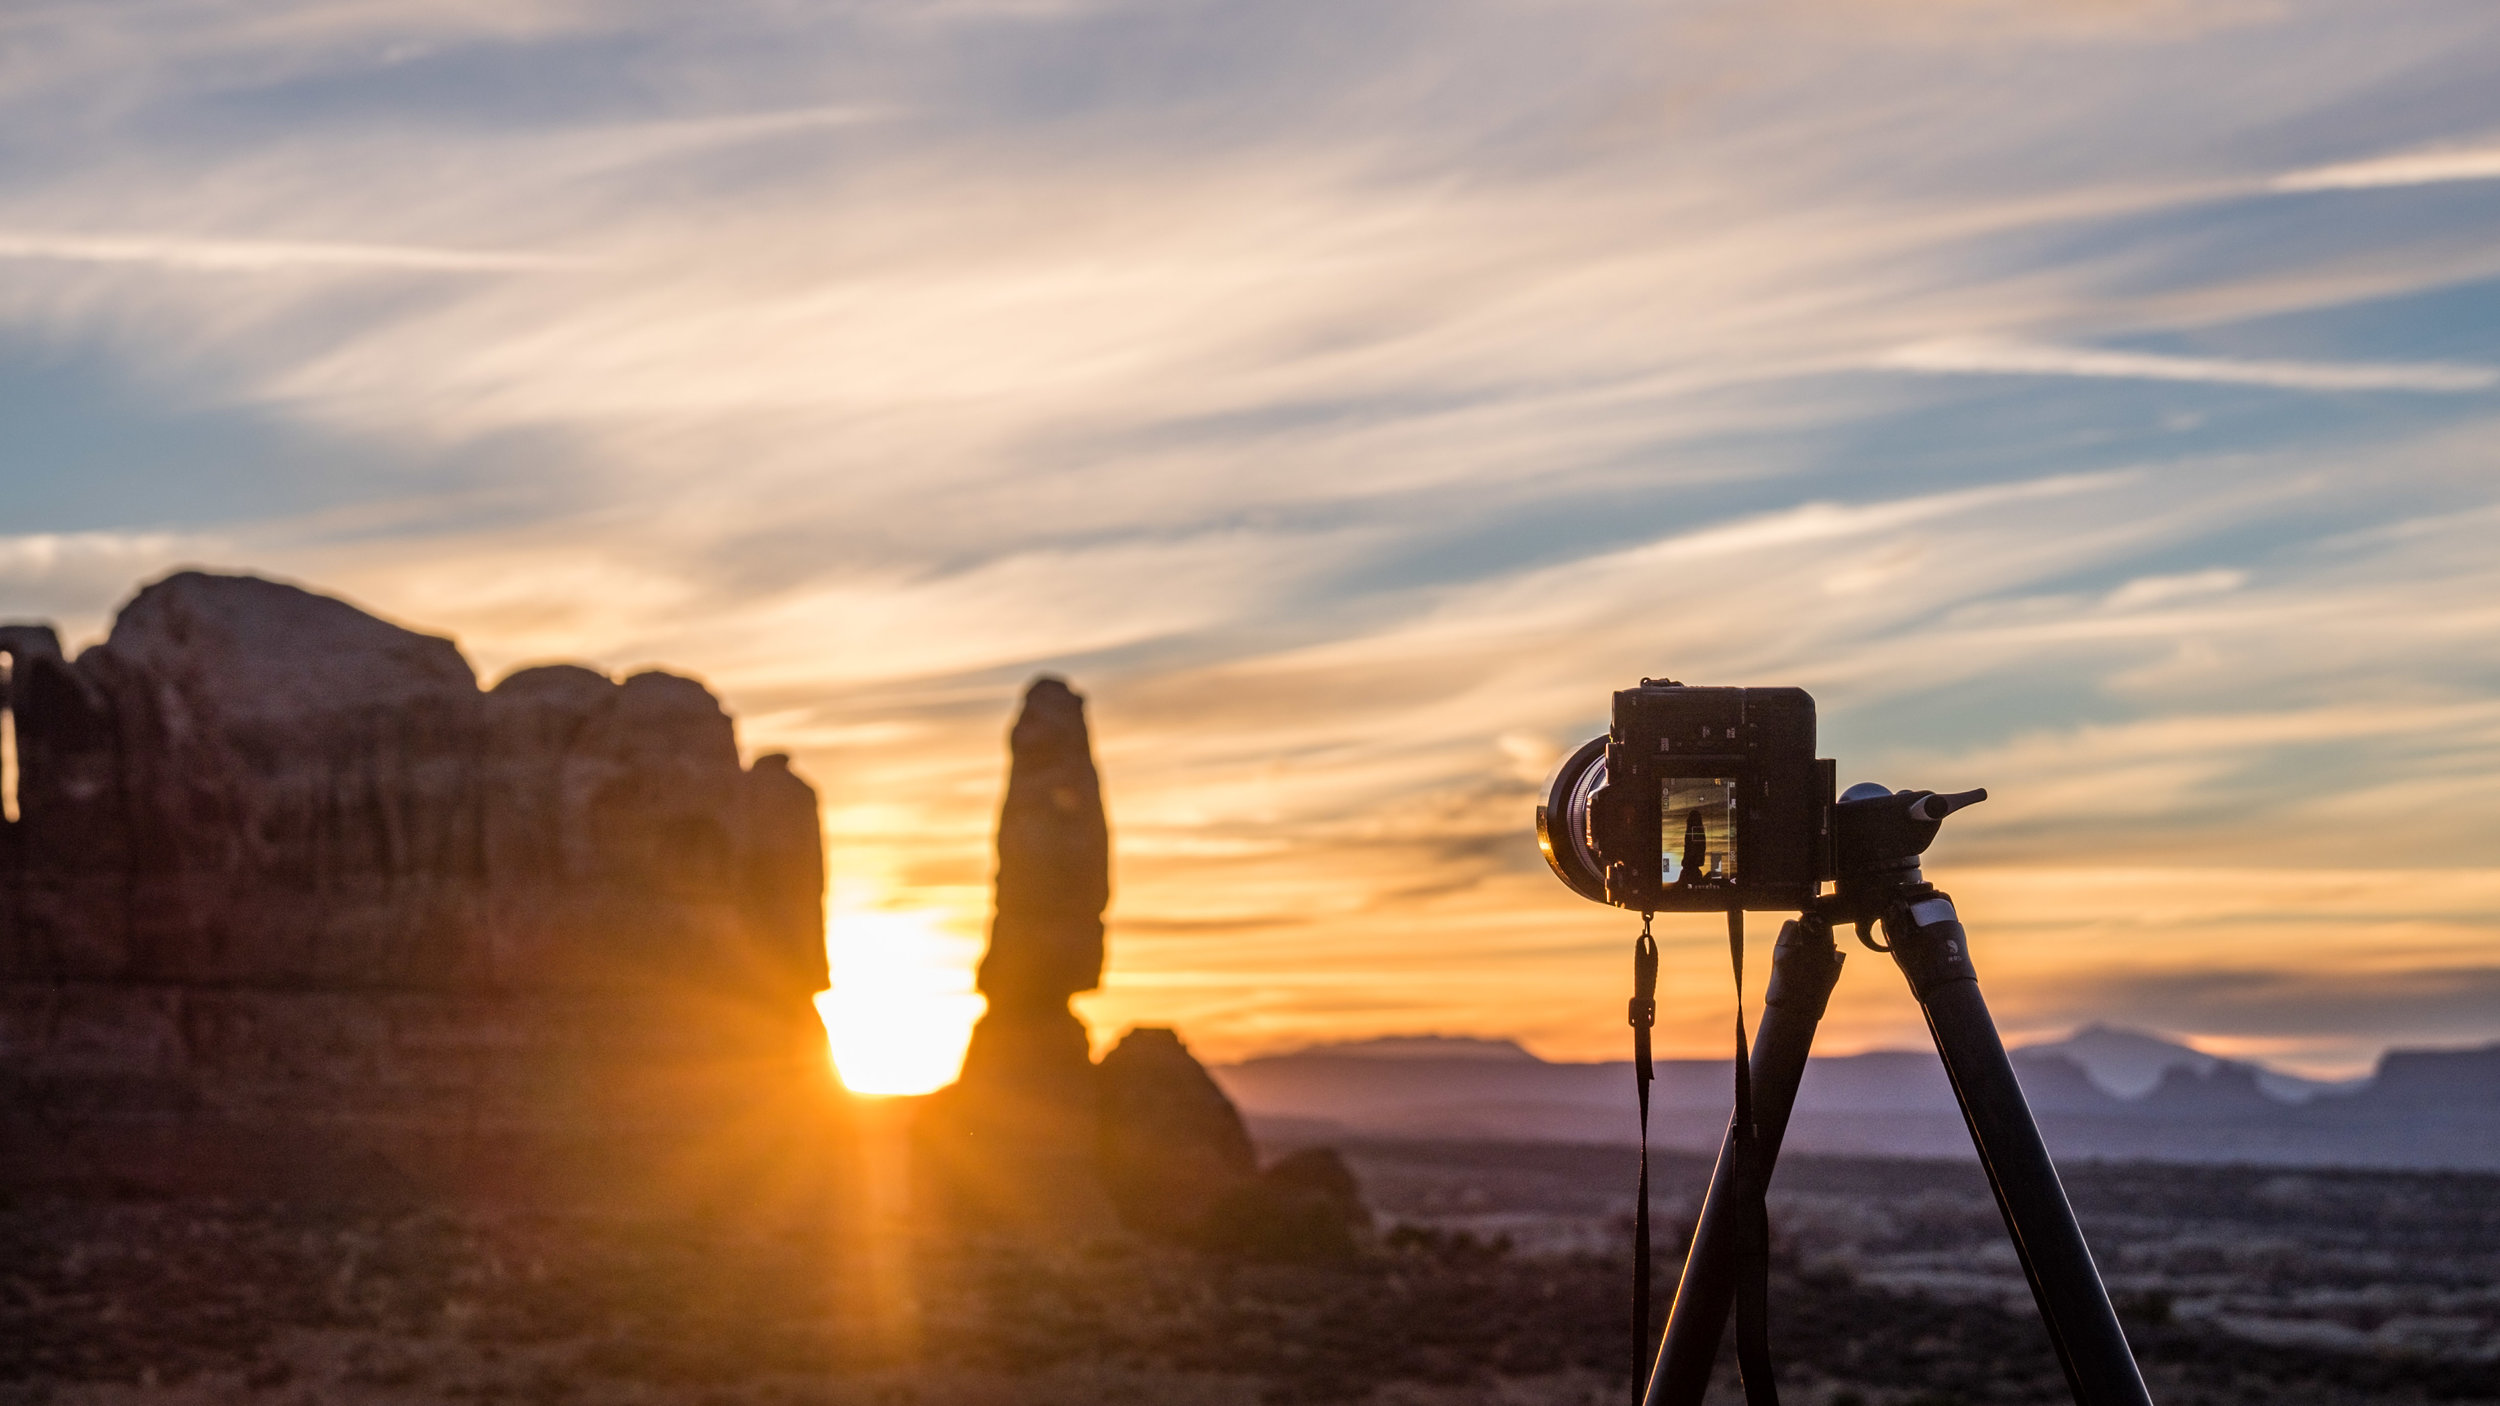 Capturing the sunset with the rock solid Fujifilm X-T1.